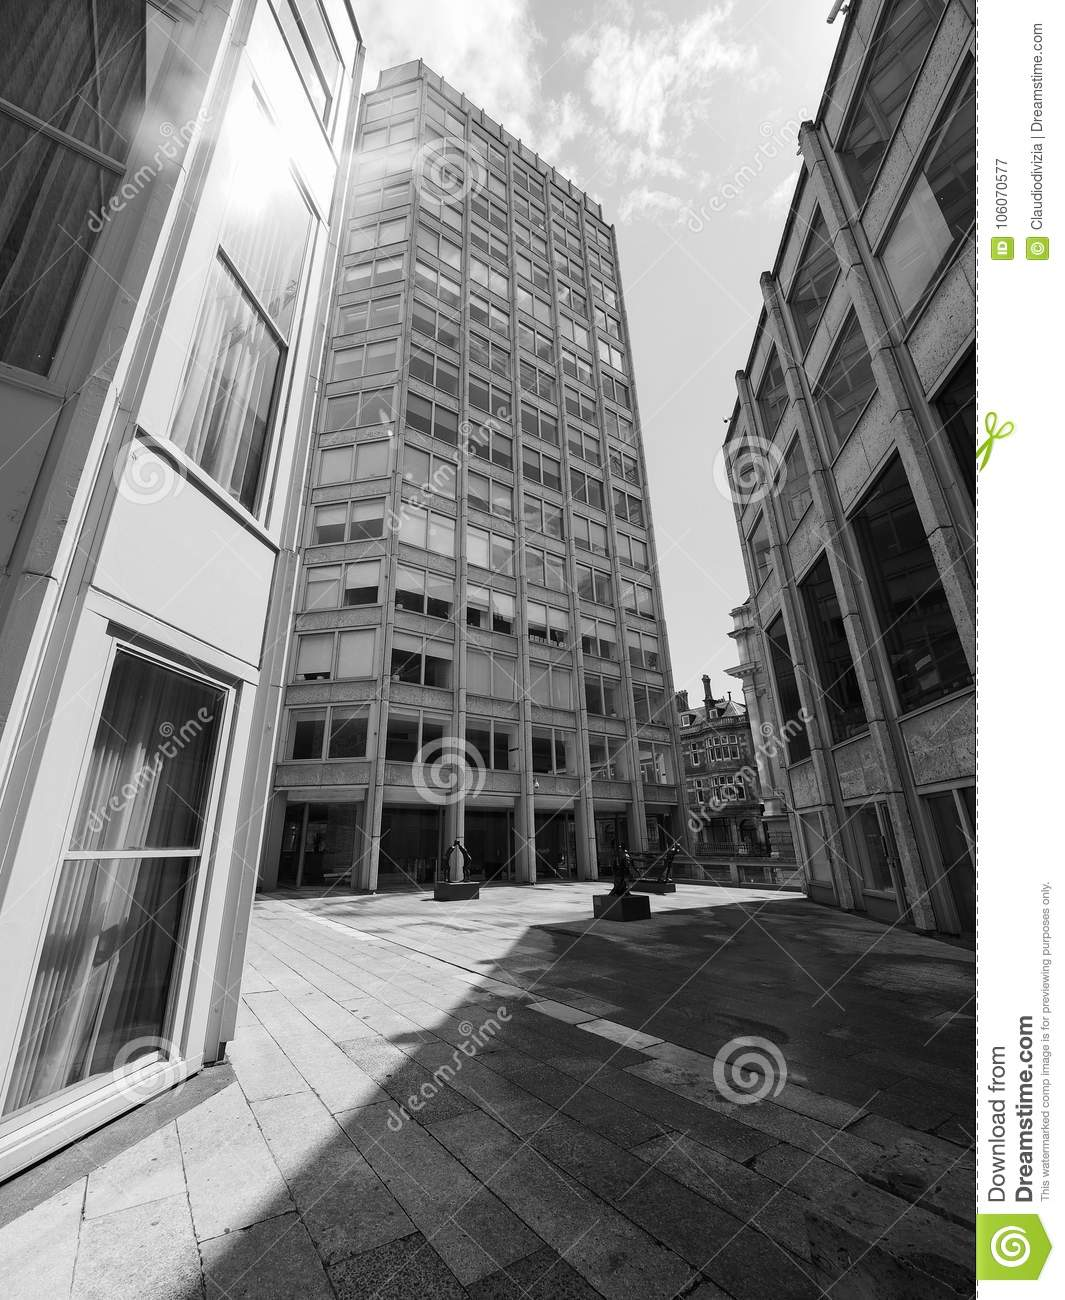 London uk circa june 2017 the economist building iconic new brutalist architecture designed by the smithsons in black and white